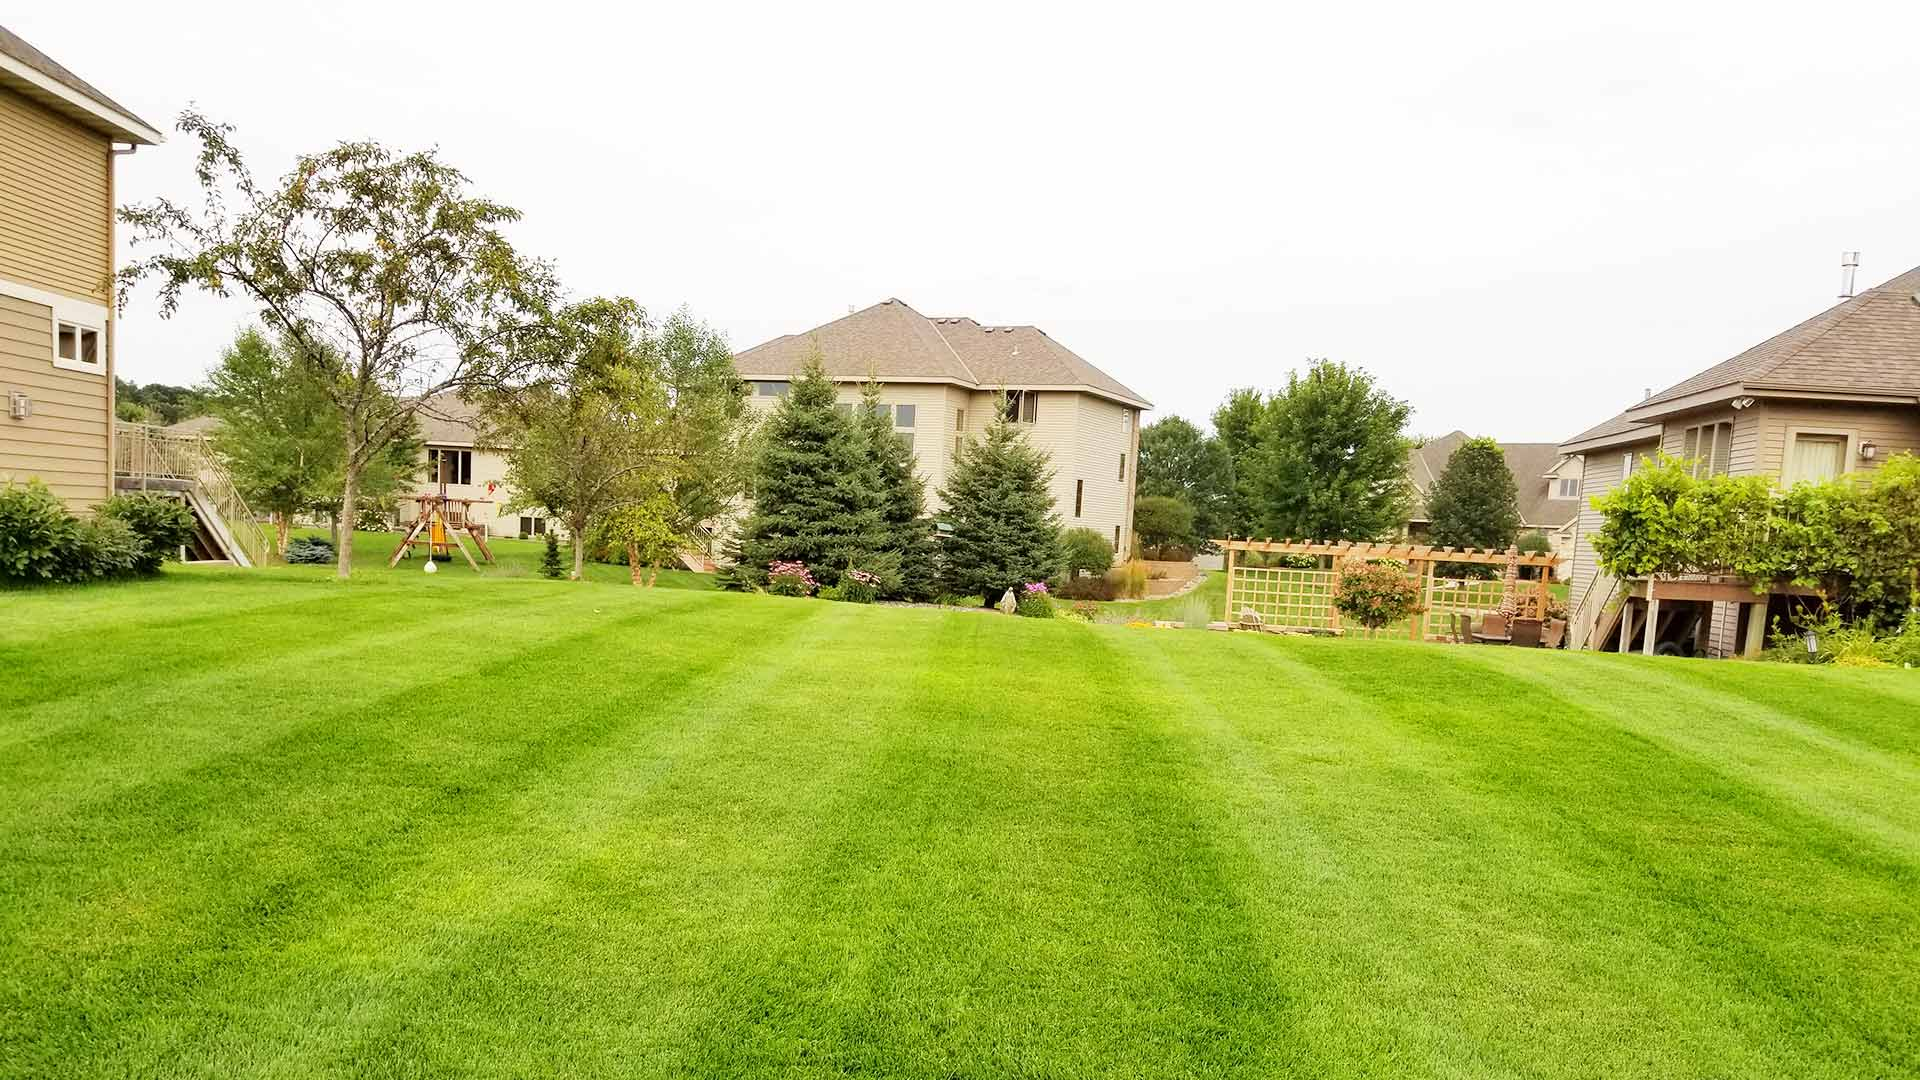 Residential backyard receiving ongoing lawn mowing and maintenance in Sartell.